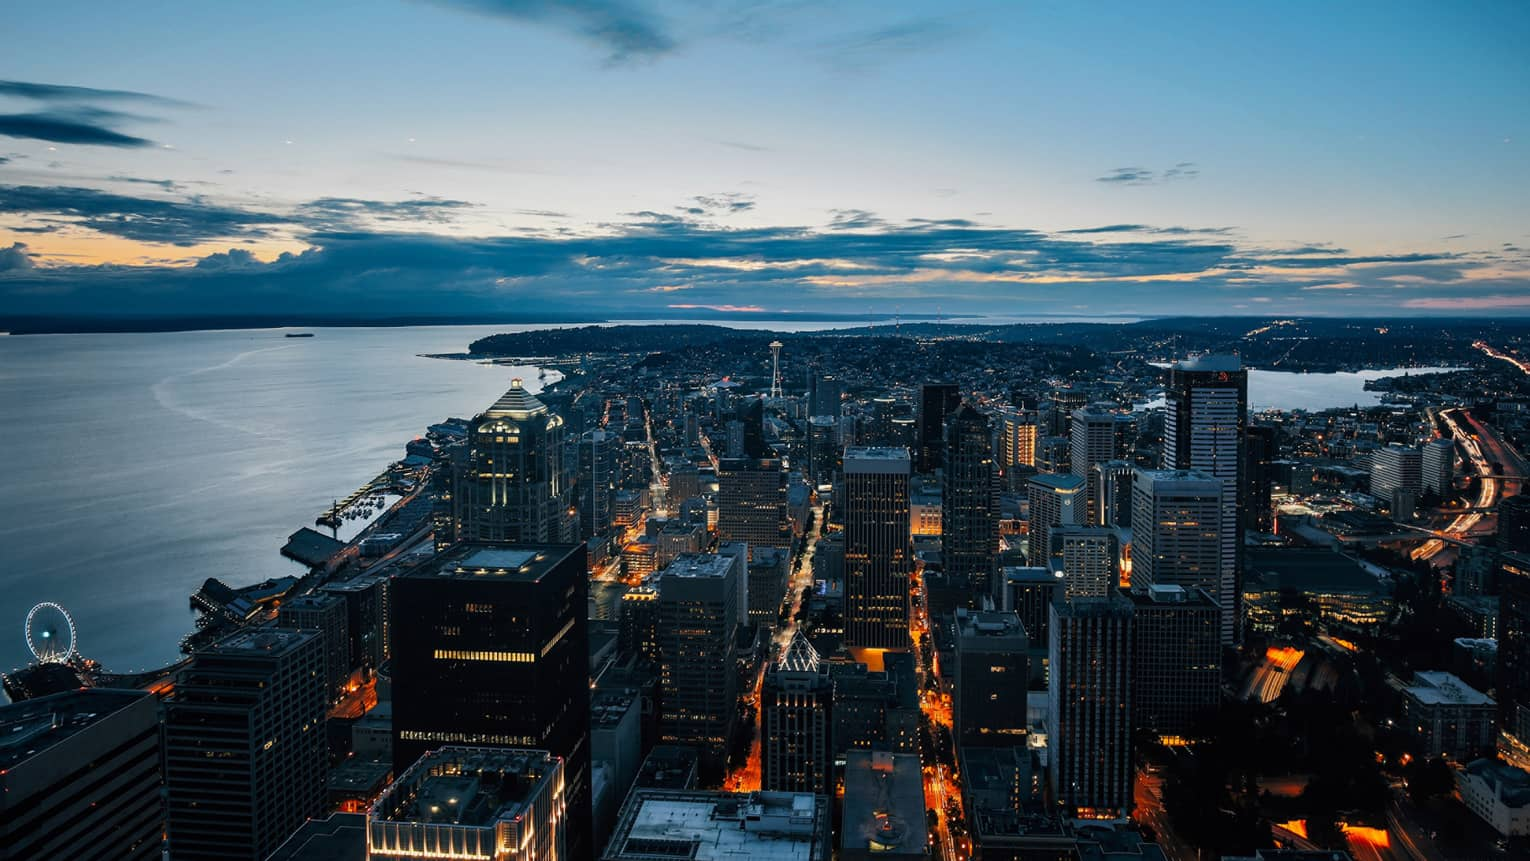 Looking down at buildings, Seattle skyline with lights along Puget Sound at dusk